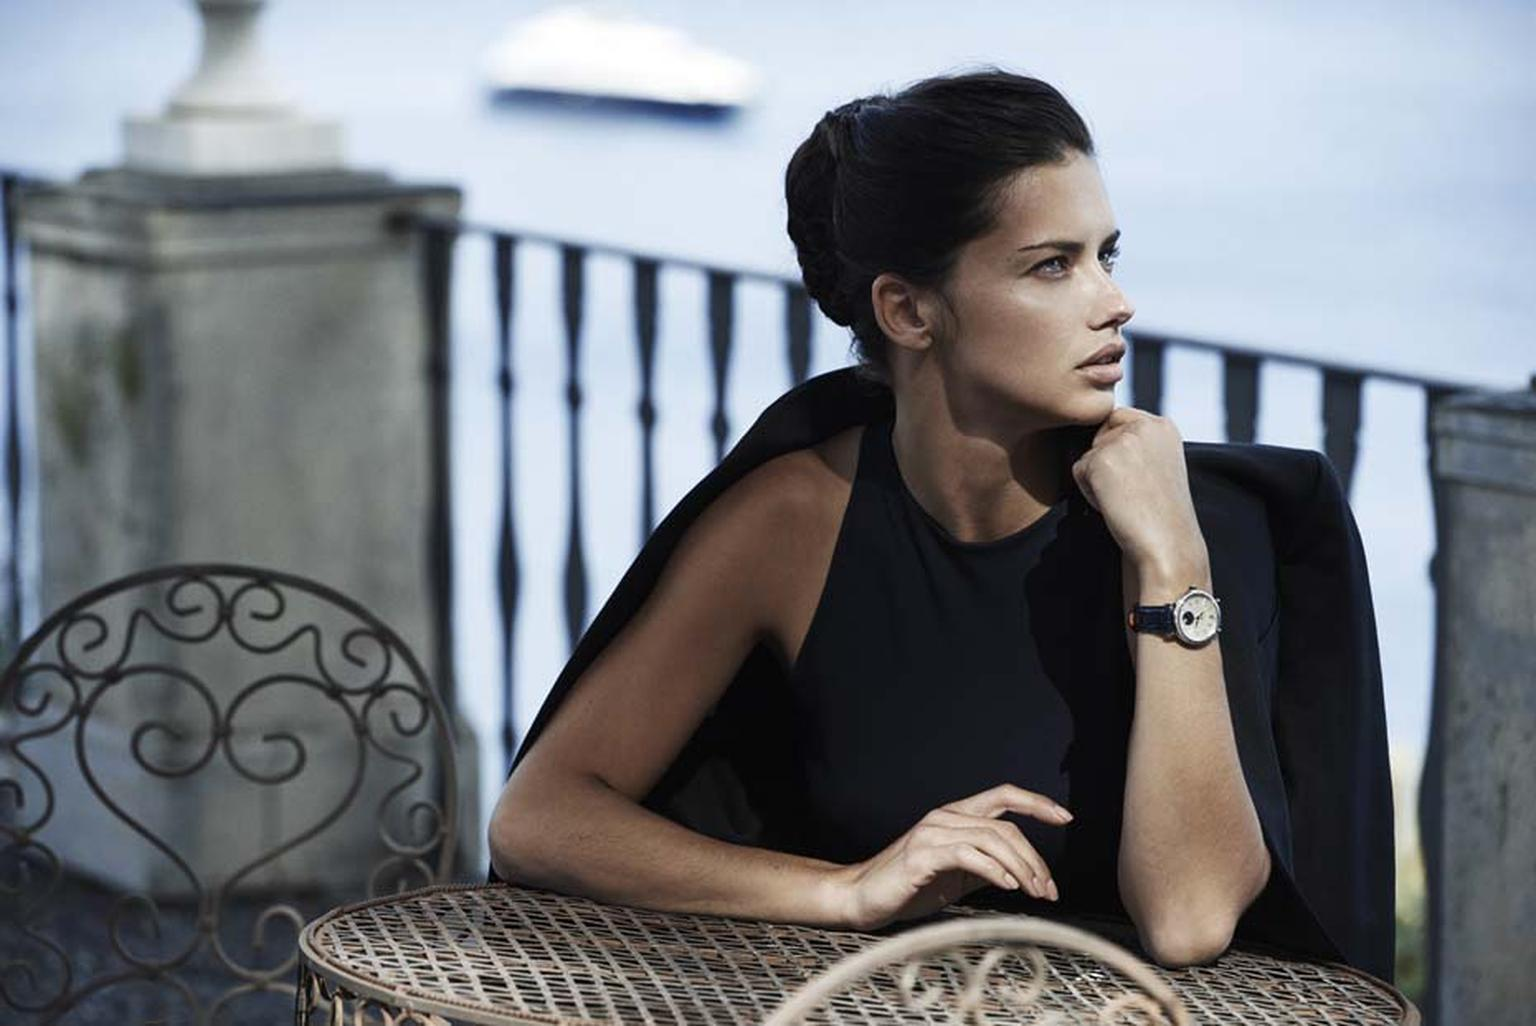 Adriana Lima looks to the Portofino seaside while wearing the IWC Schaffhausen Portofino Midsize Automatic Moon Phase watch with an alligator leather strap.